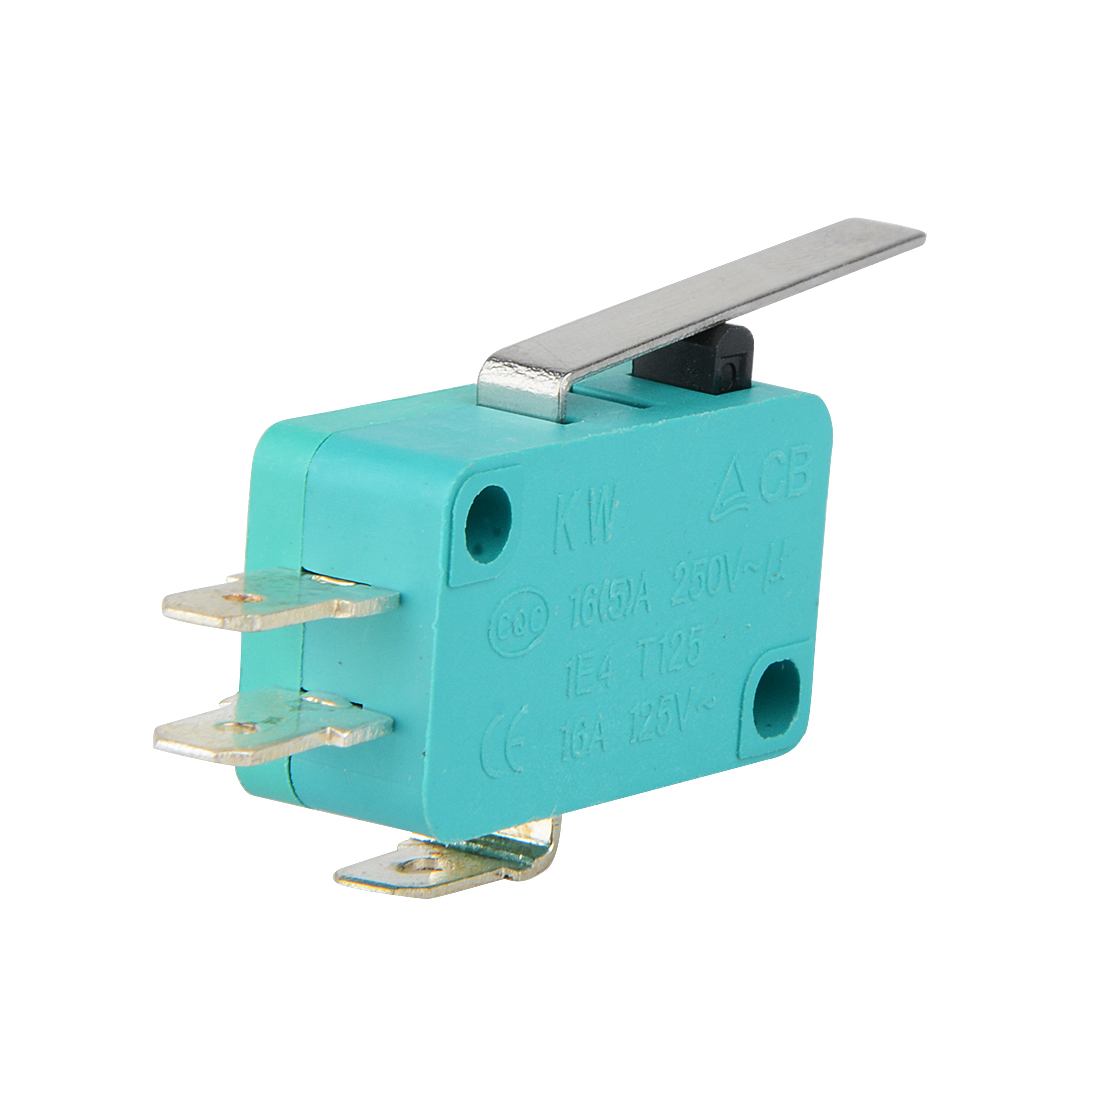 Lights & Lighting Lighting Accessories 20pcs/lot Micro Limit Switch Short Straight Hinge Lever Arm Spdt Green Switches 15a 250v With Terminal Snap Action Year-End Bargain Sale